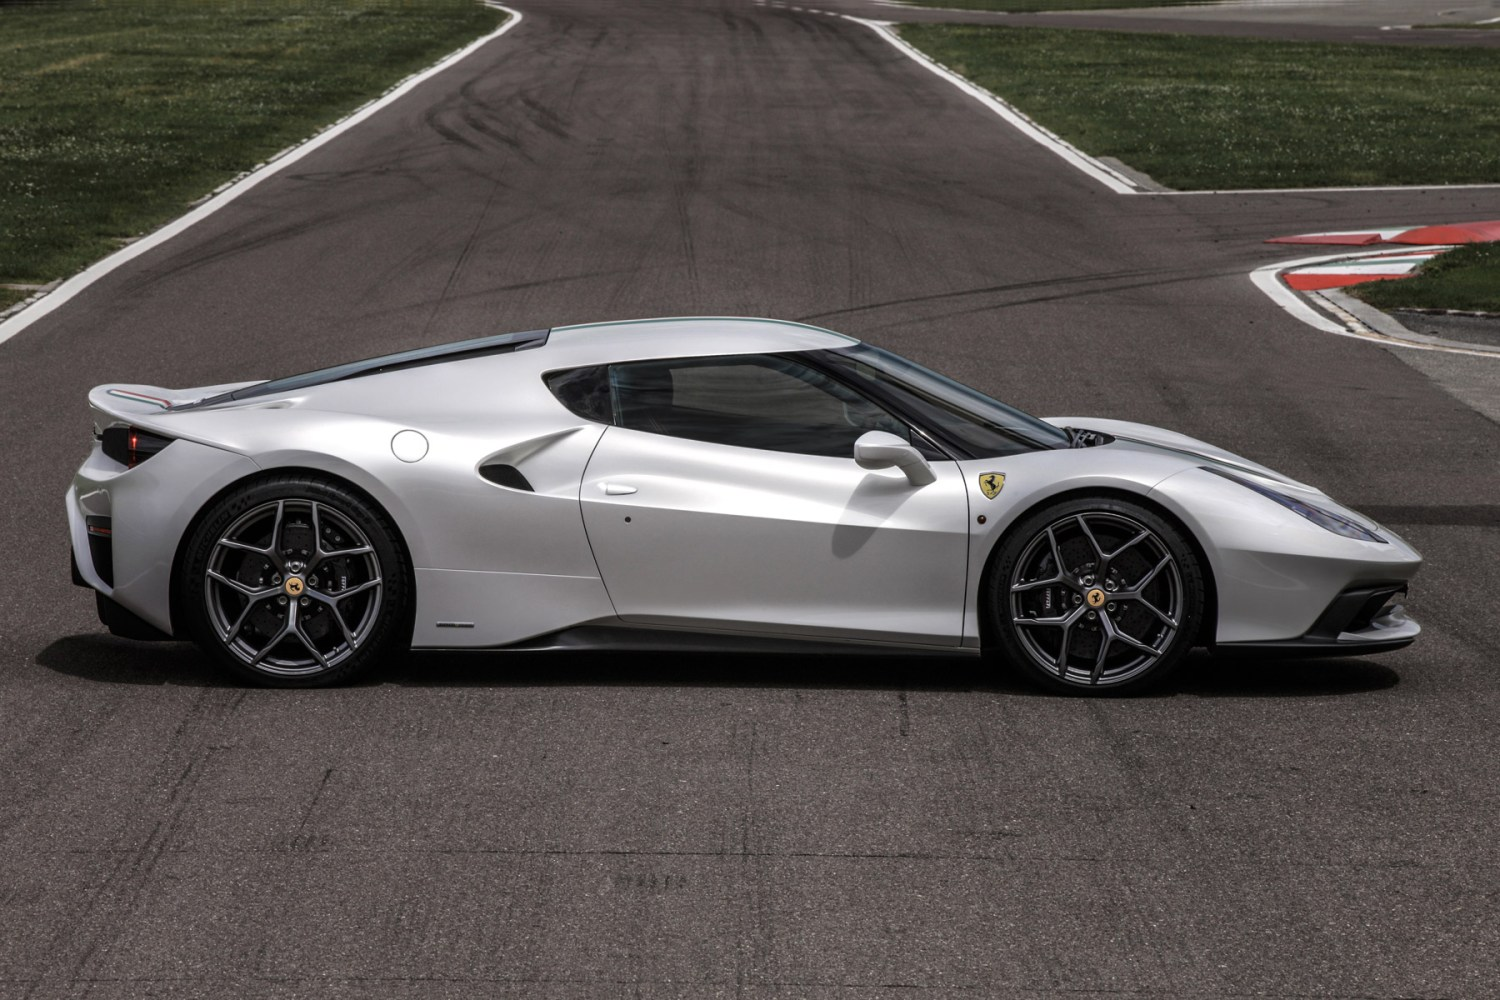 Ferrari creates a one-off 458 MM Speciale for wealthy Brit customer